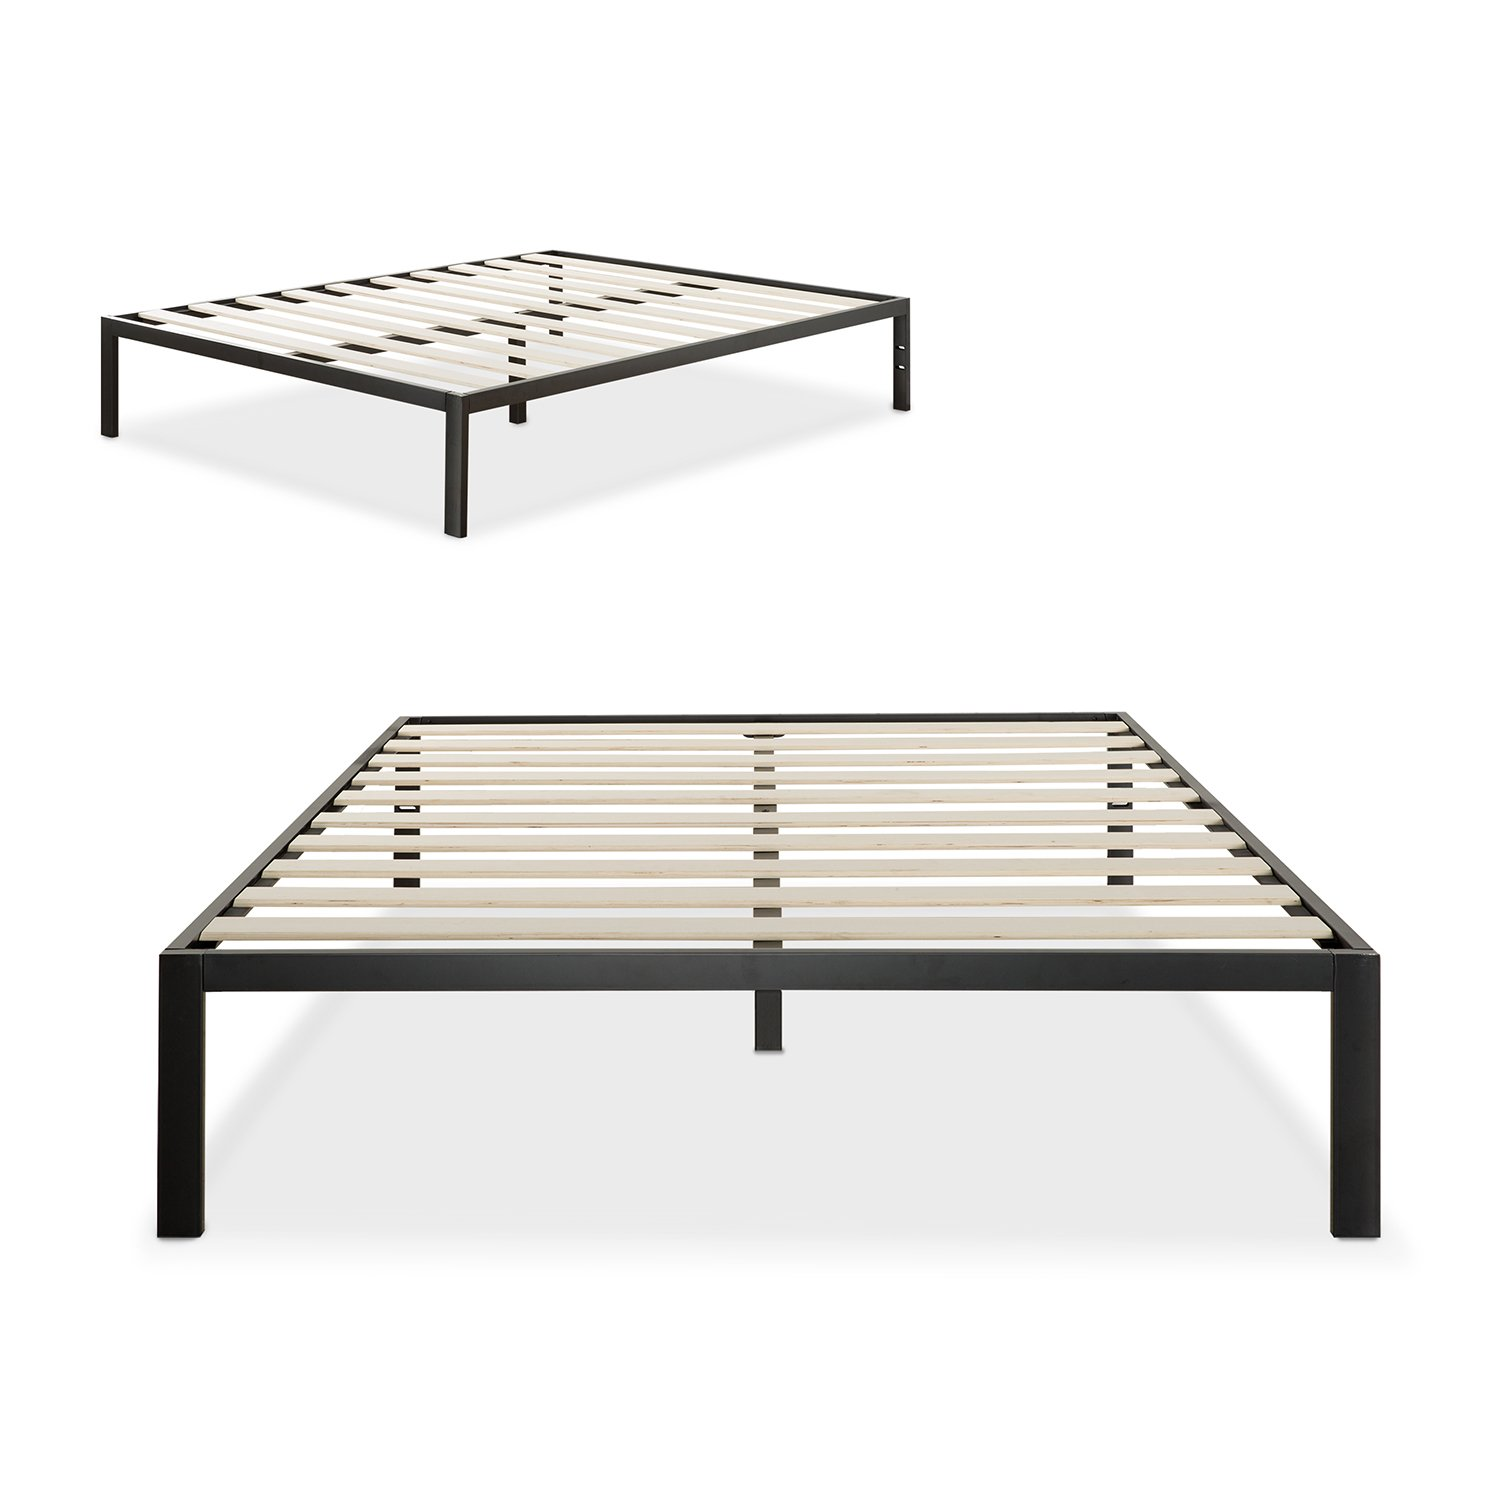 zinus modern studio 14 inch platform 1500 metal bed frame mattress foundation no boxspring needed wooden slat support